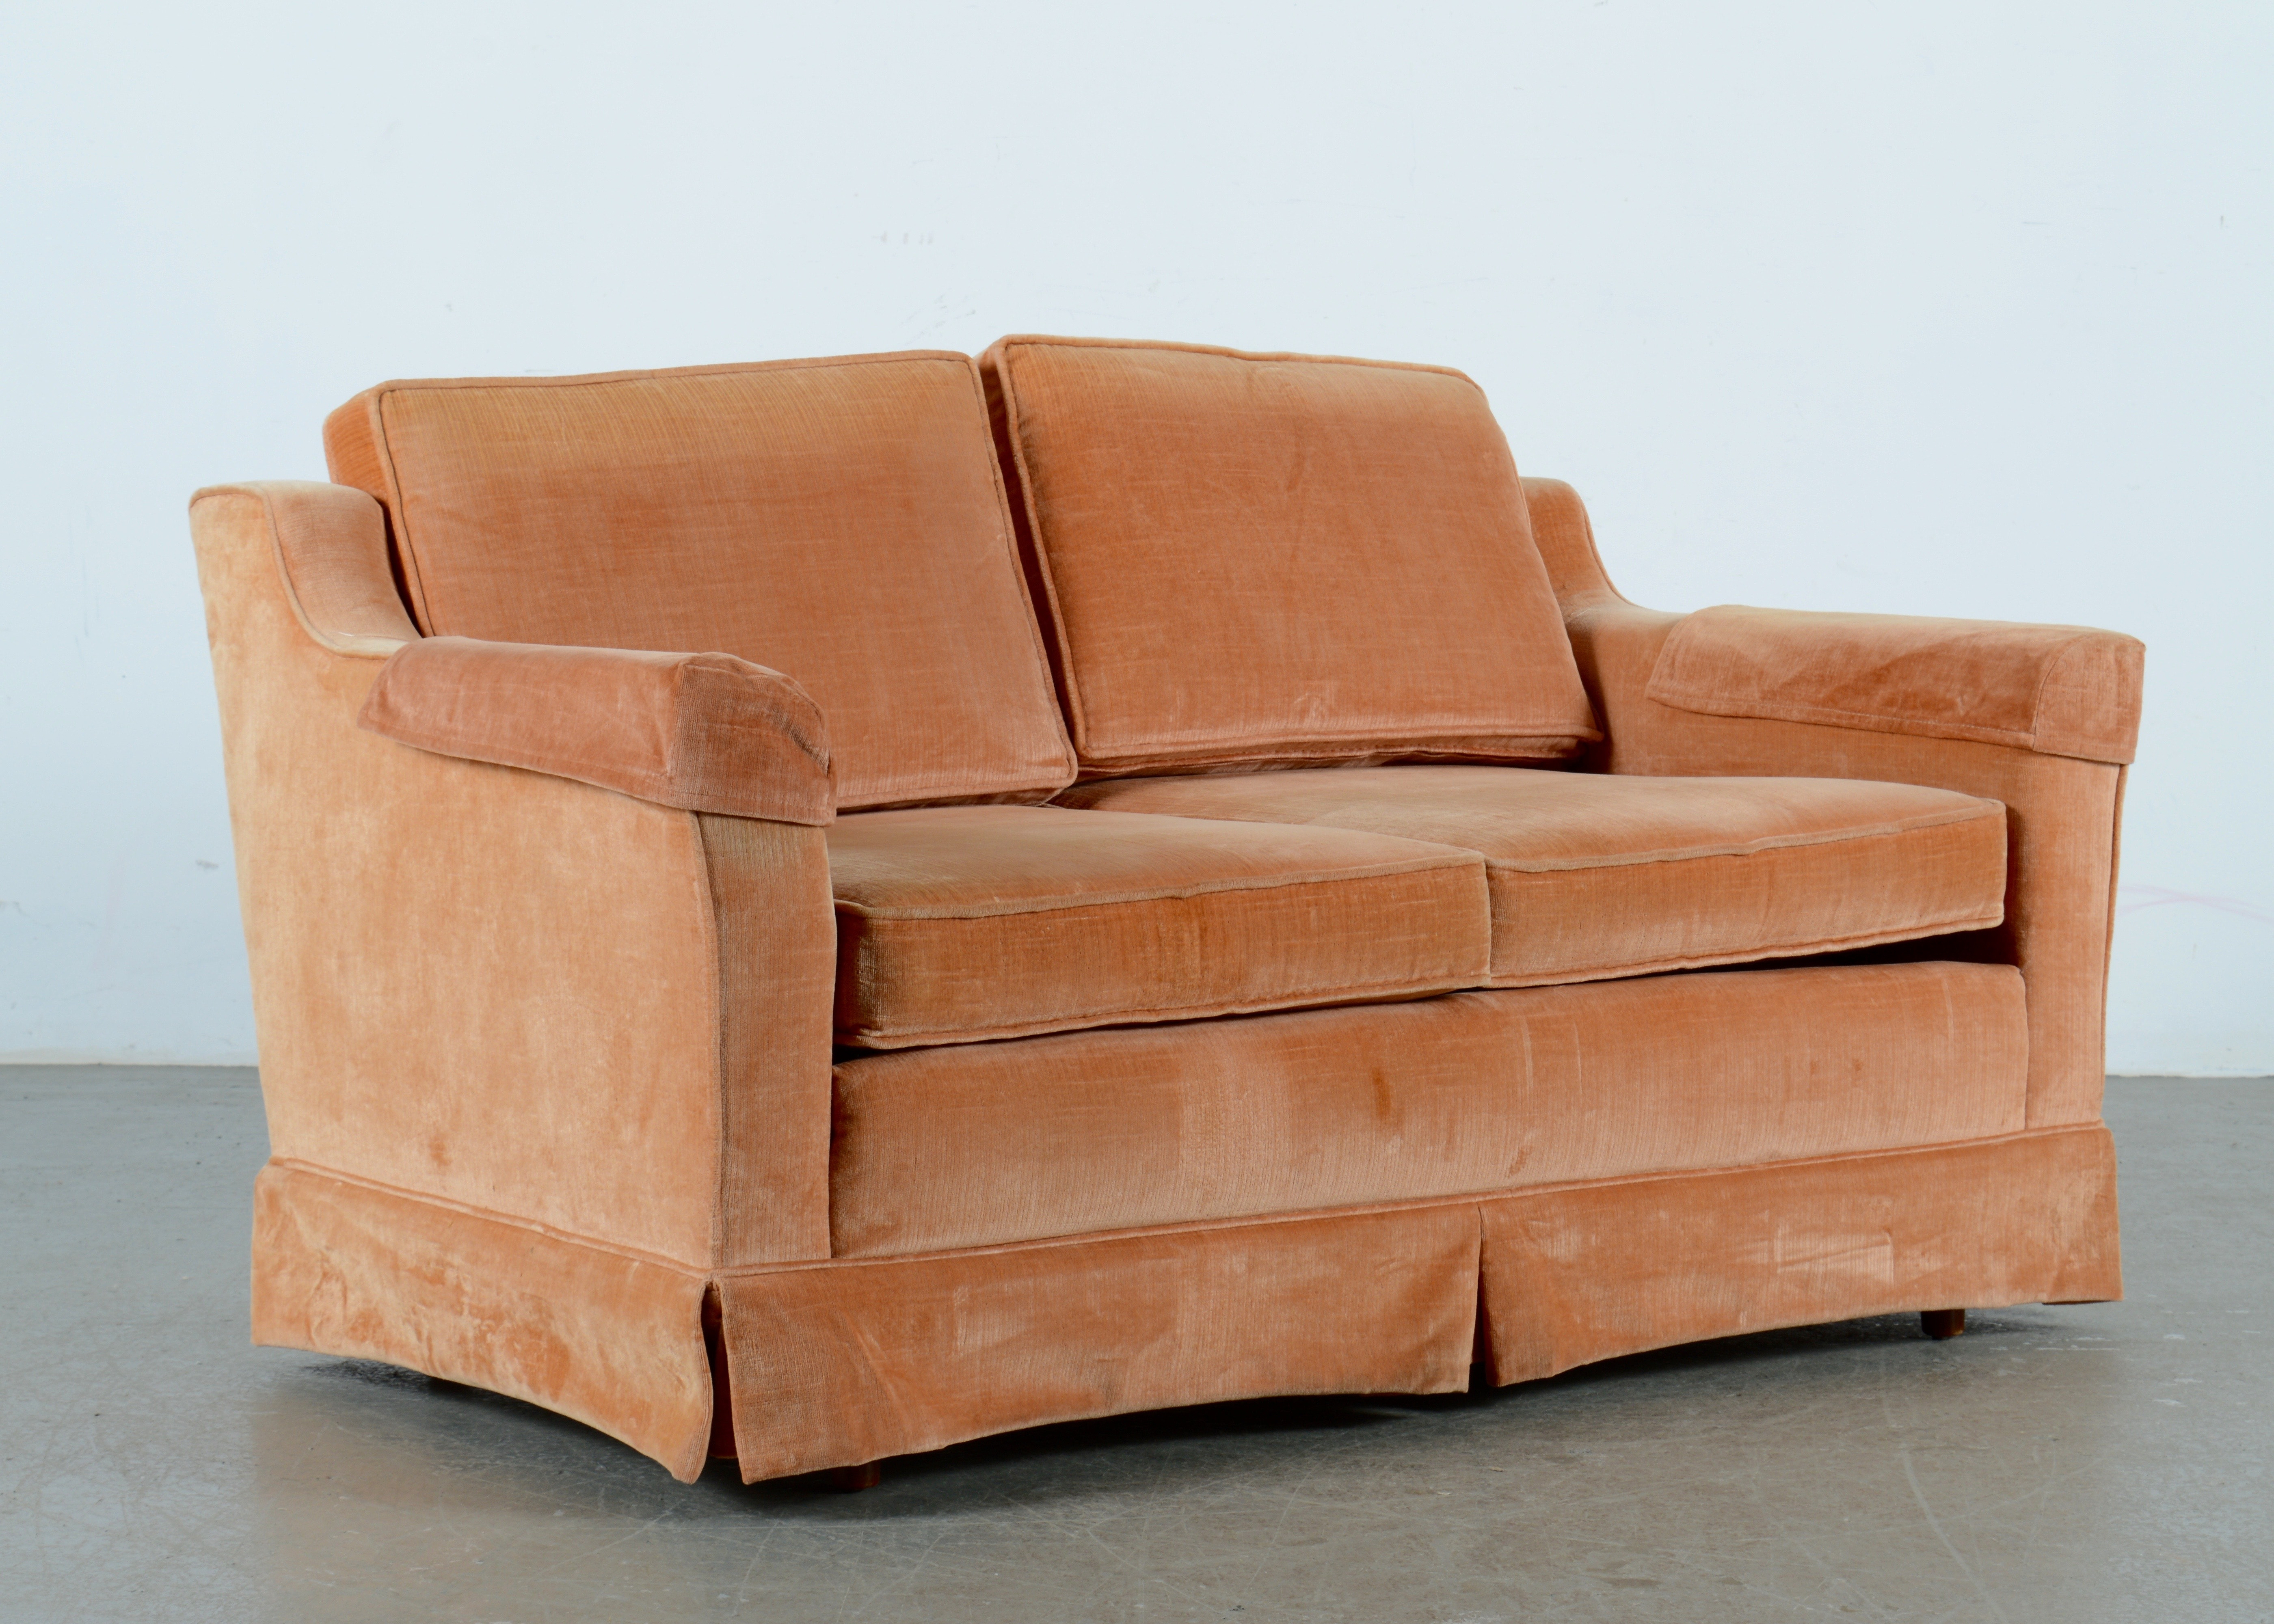 Rose Colored Loveseat Sofa Ebth